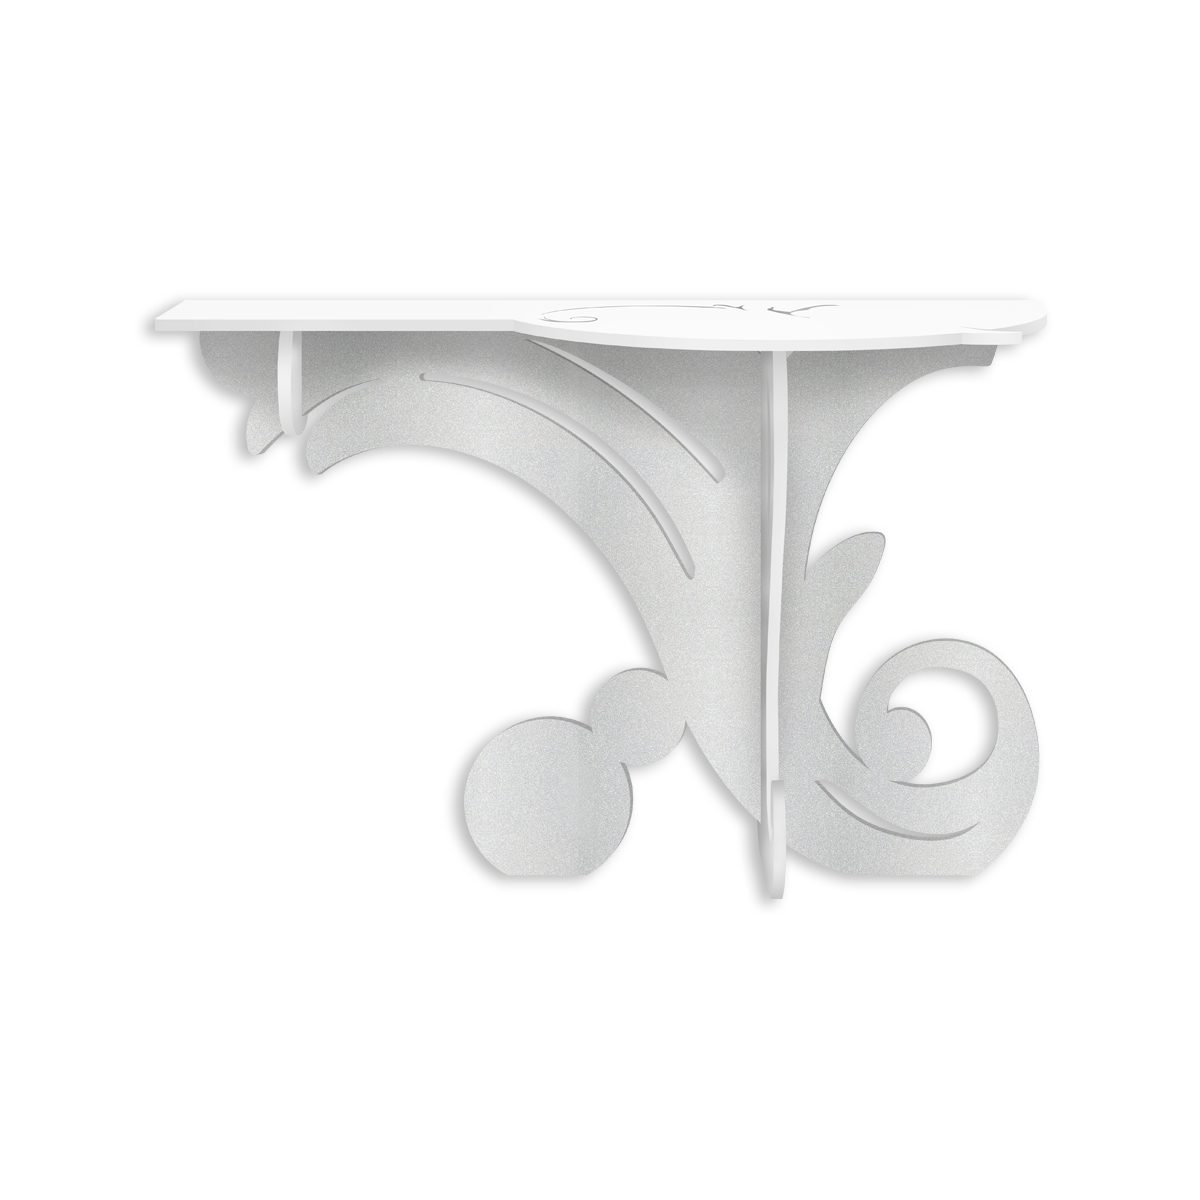 L:A:S - Laser Art Style - CONSOLLE INGRESSO DESIGN MODERNO – SI-286 BIANCO-ARGENTO